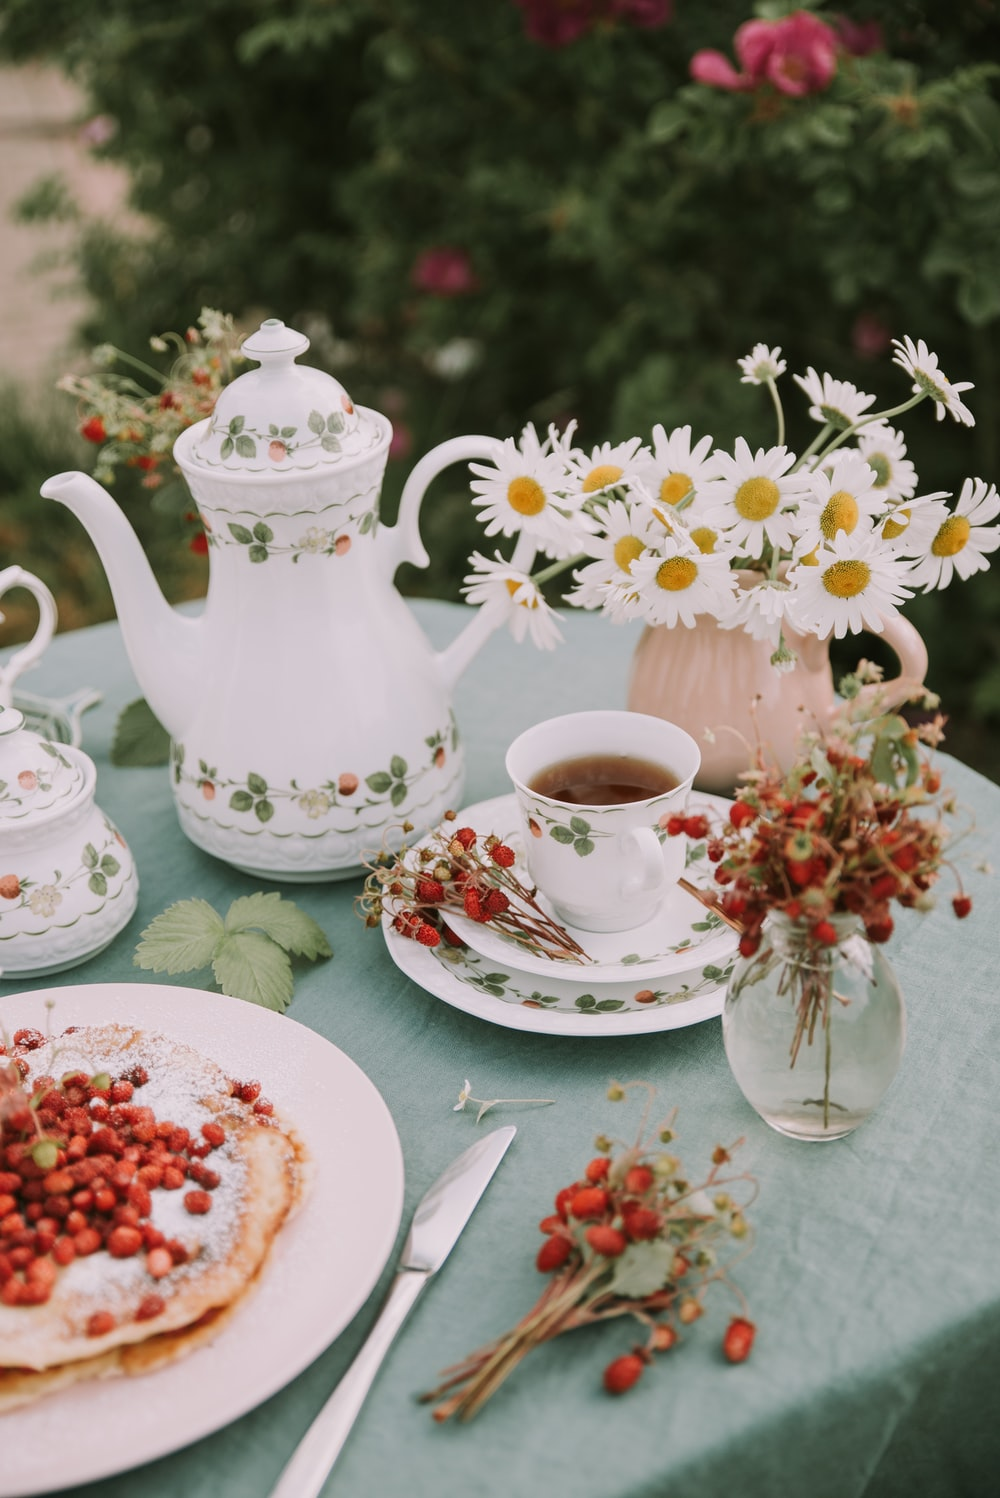 white teapot with teacup beside flowers